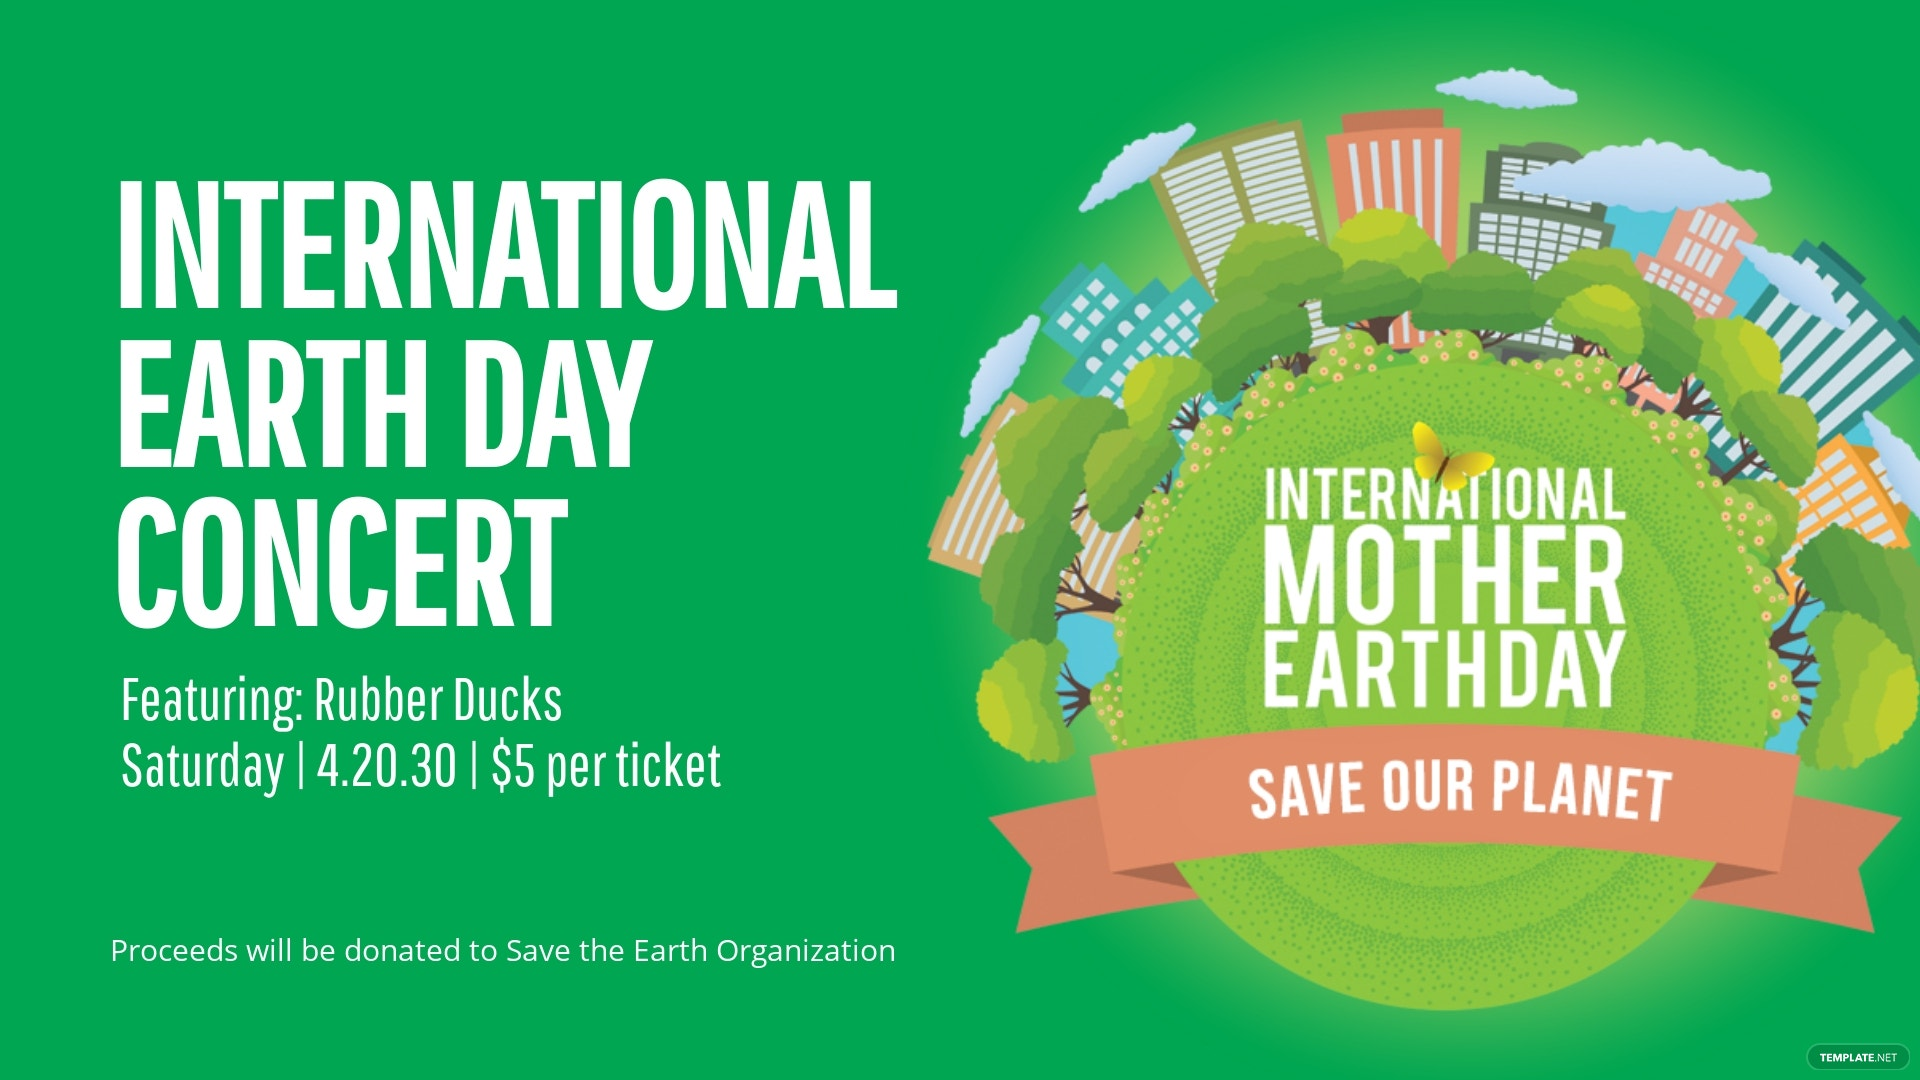 International Earth Day Facebook Event Cover Template